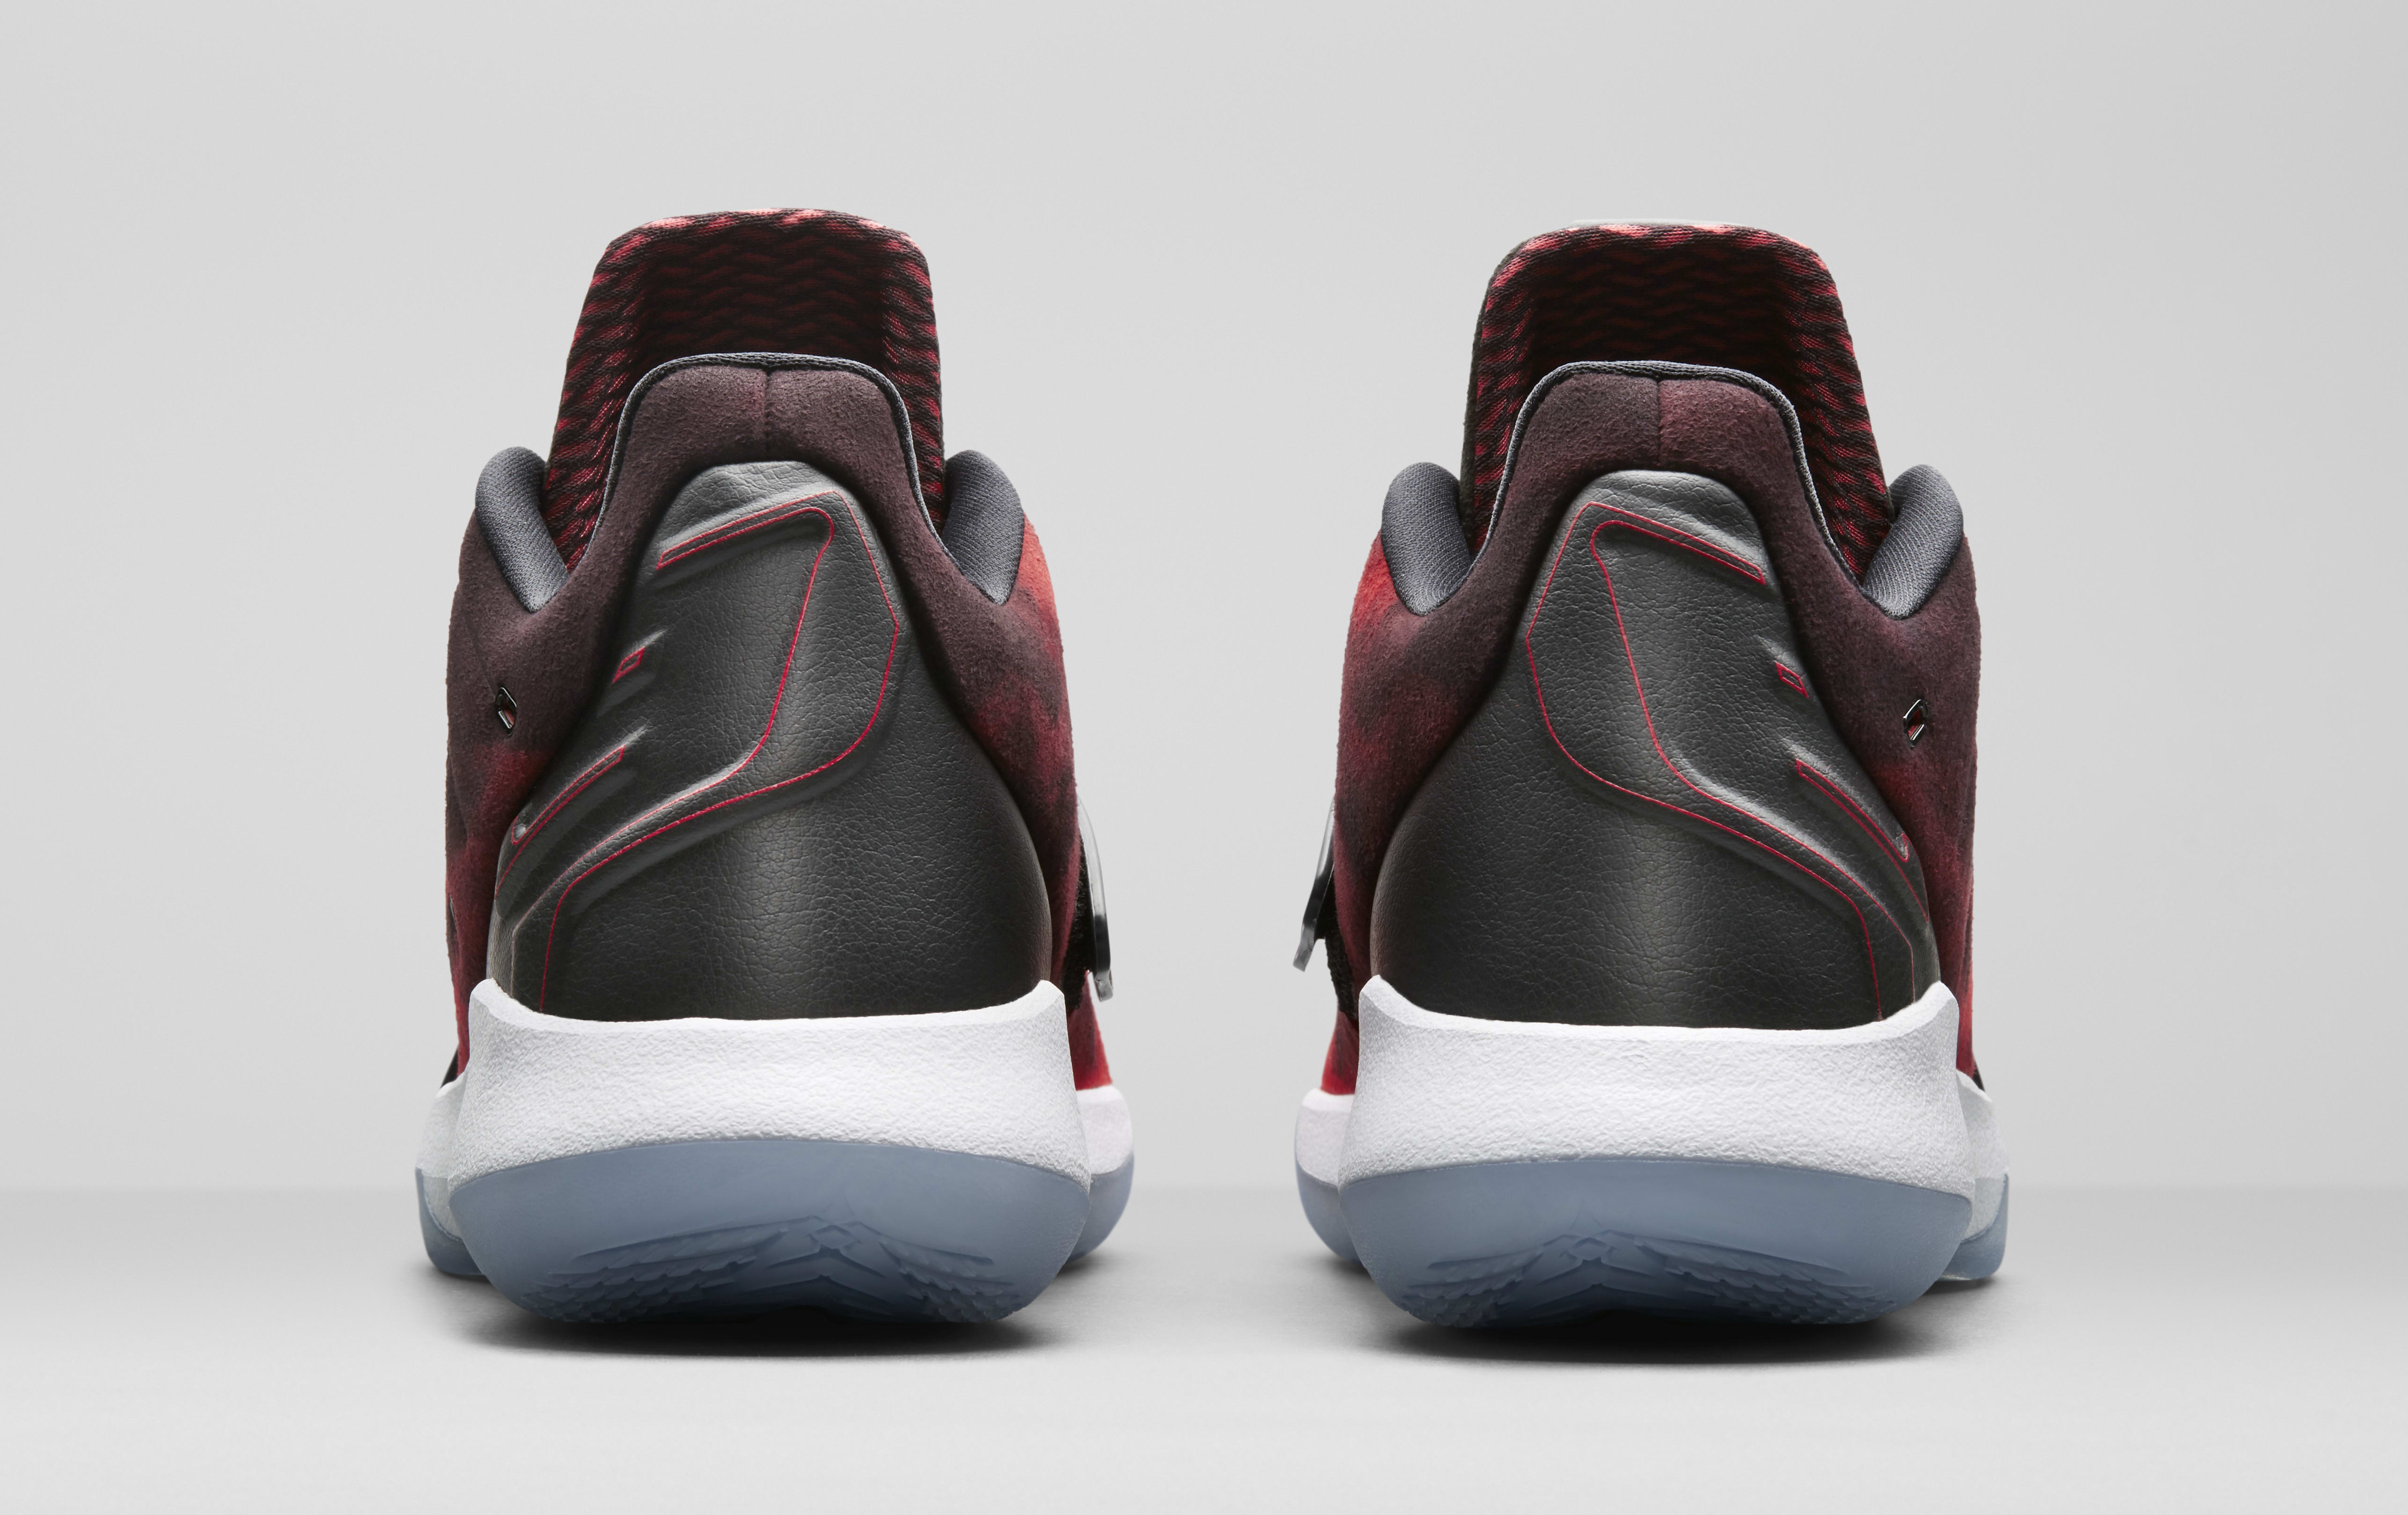 new products bc909 dbe8c Jordan Brand Is Still Making Signature Shoes for Chris Paul ...